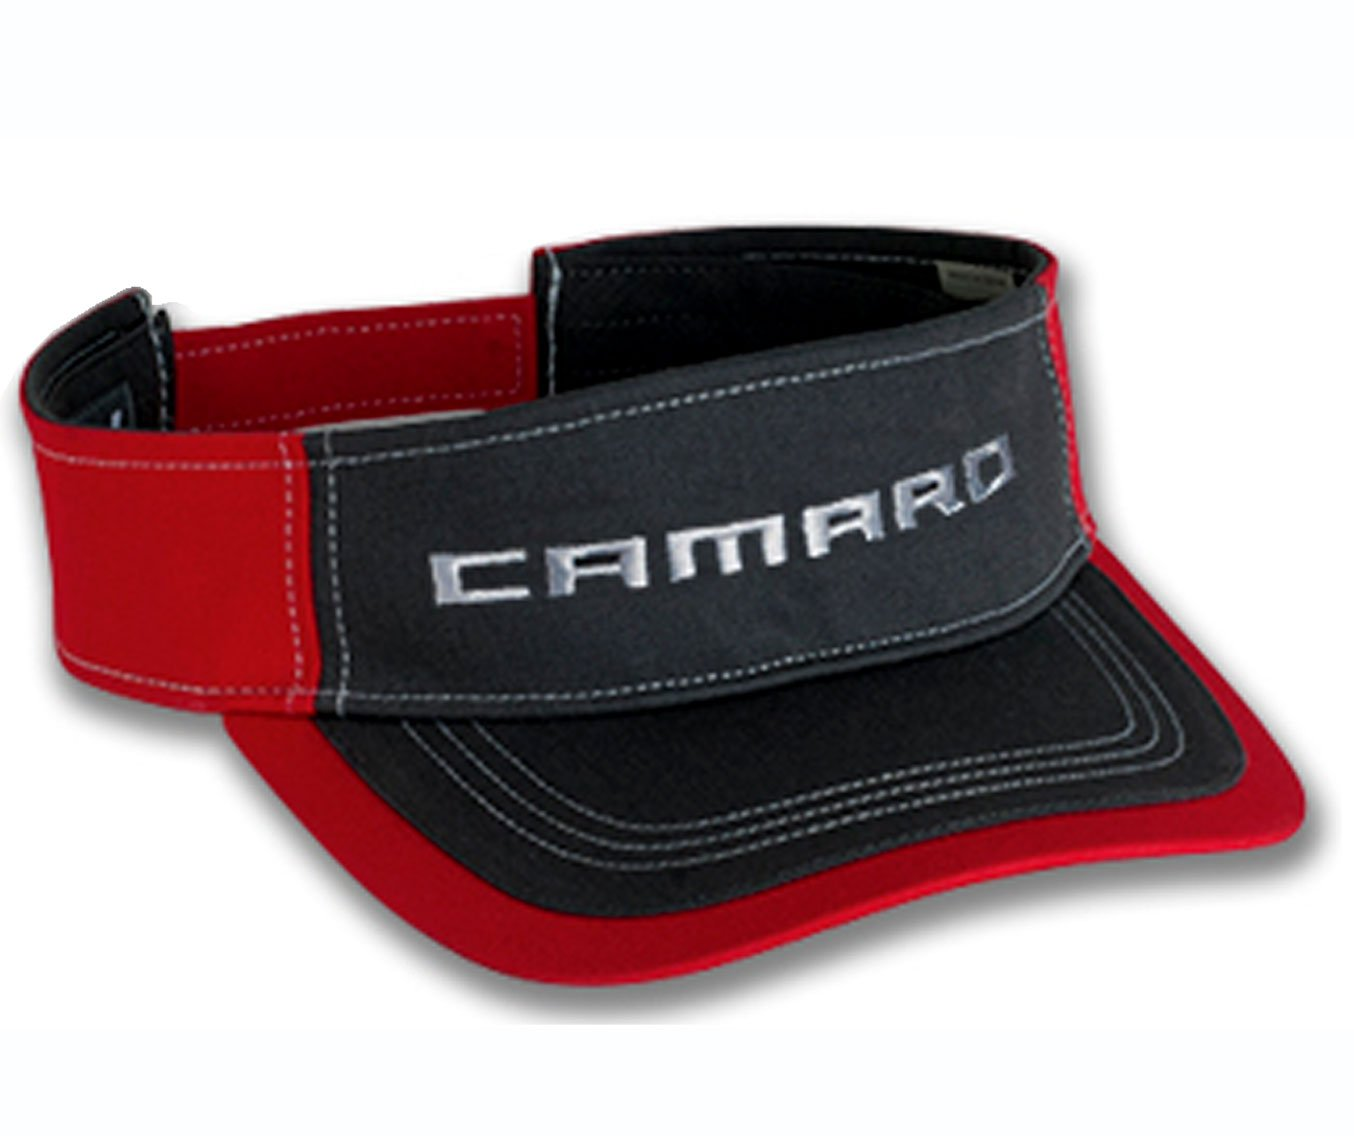 Bundle with Driving Style Decal RS-824 Gregs Automotive Compatible with Visor Red Chevrolet Camaro